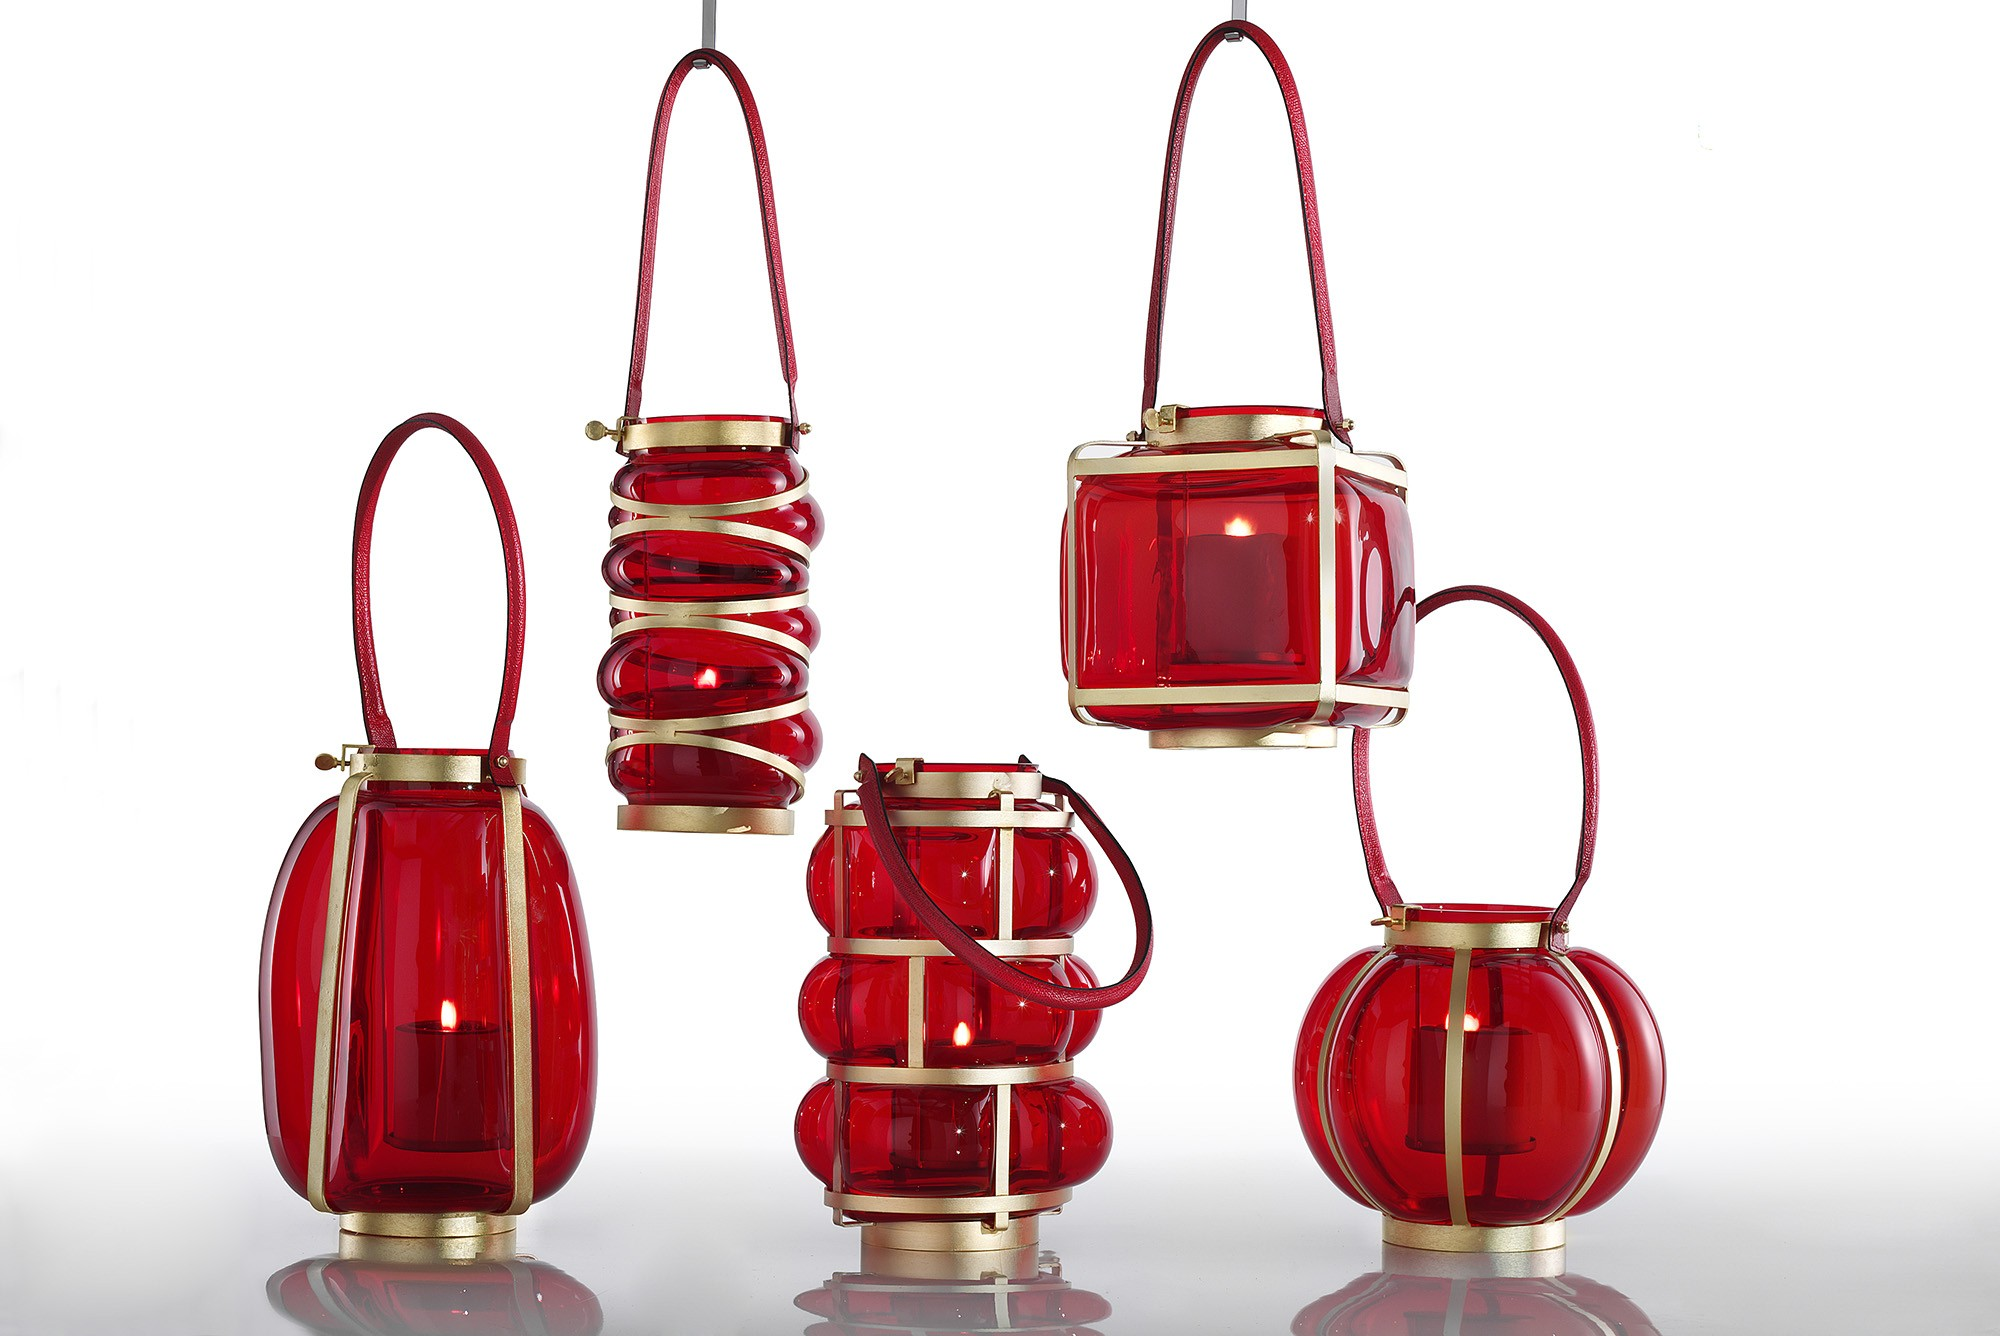 Oval red glass and gold lantern, leather handle